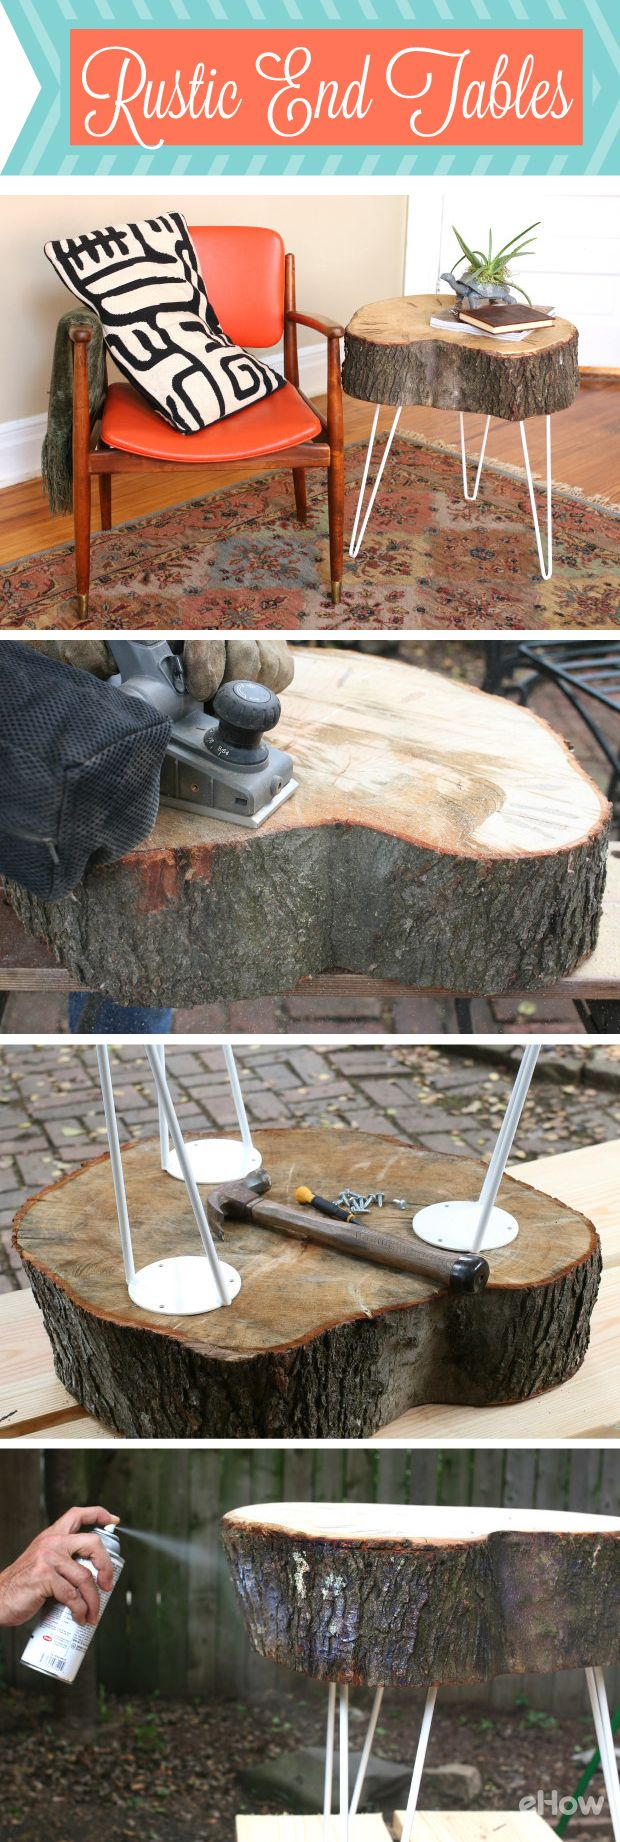 DIY your own custom rustic end tables from the sliced portion of a tree trunk and hairpin legs to give it that mid-century modern feel. Full how-to with pitures here: http://www.ehow.com/how_7703839_make-rustic-end-tables.html?utm_source=pinterest.com&utm_medium=referral&utm_content=freestyle&utm_campaign=fanpage